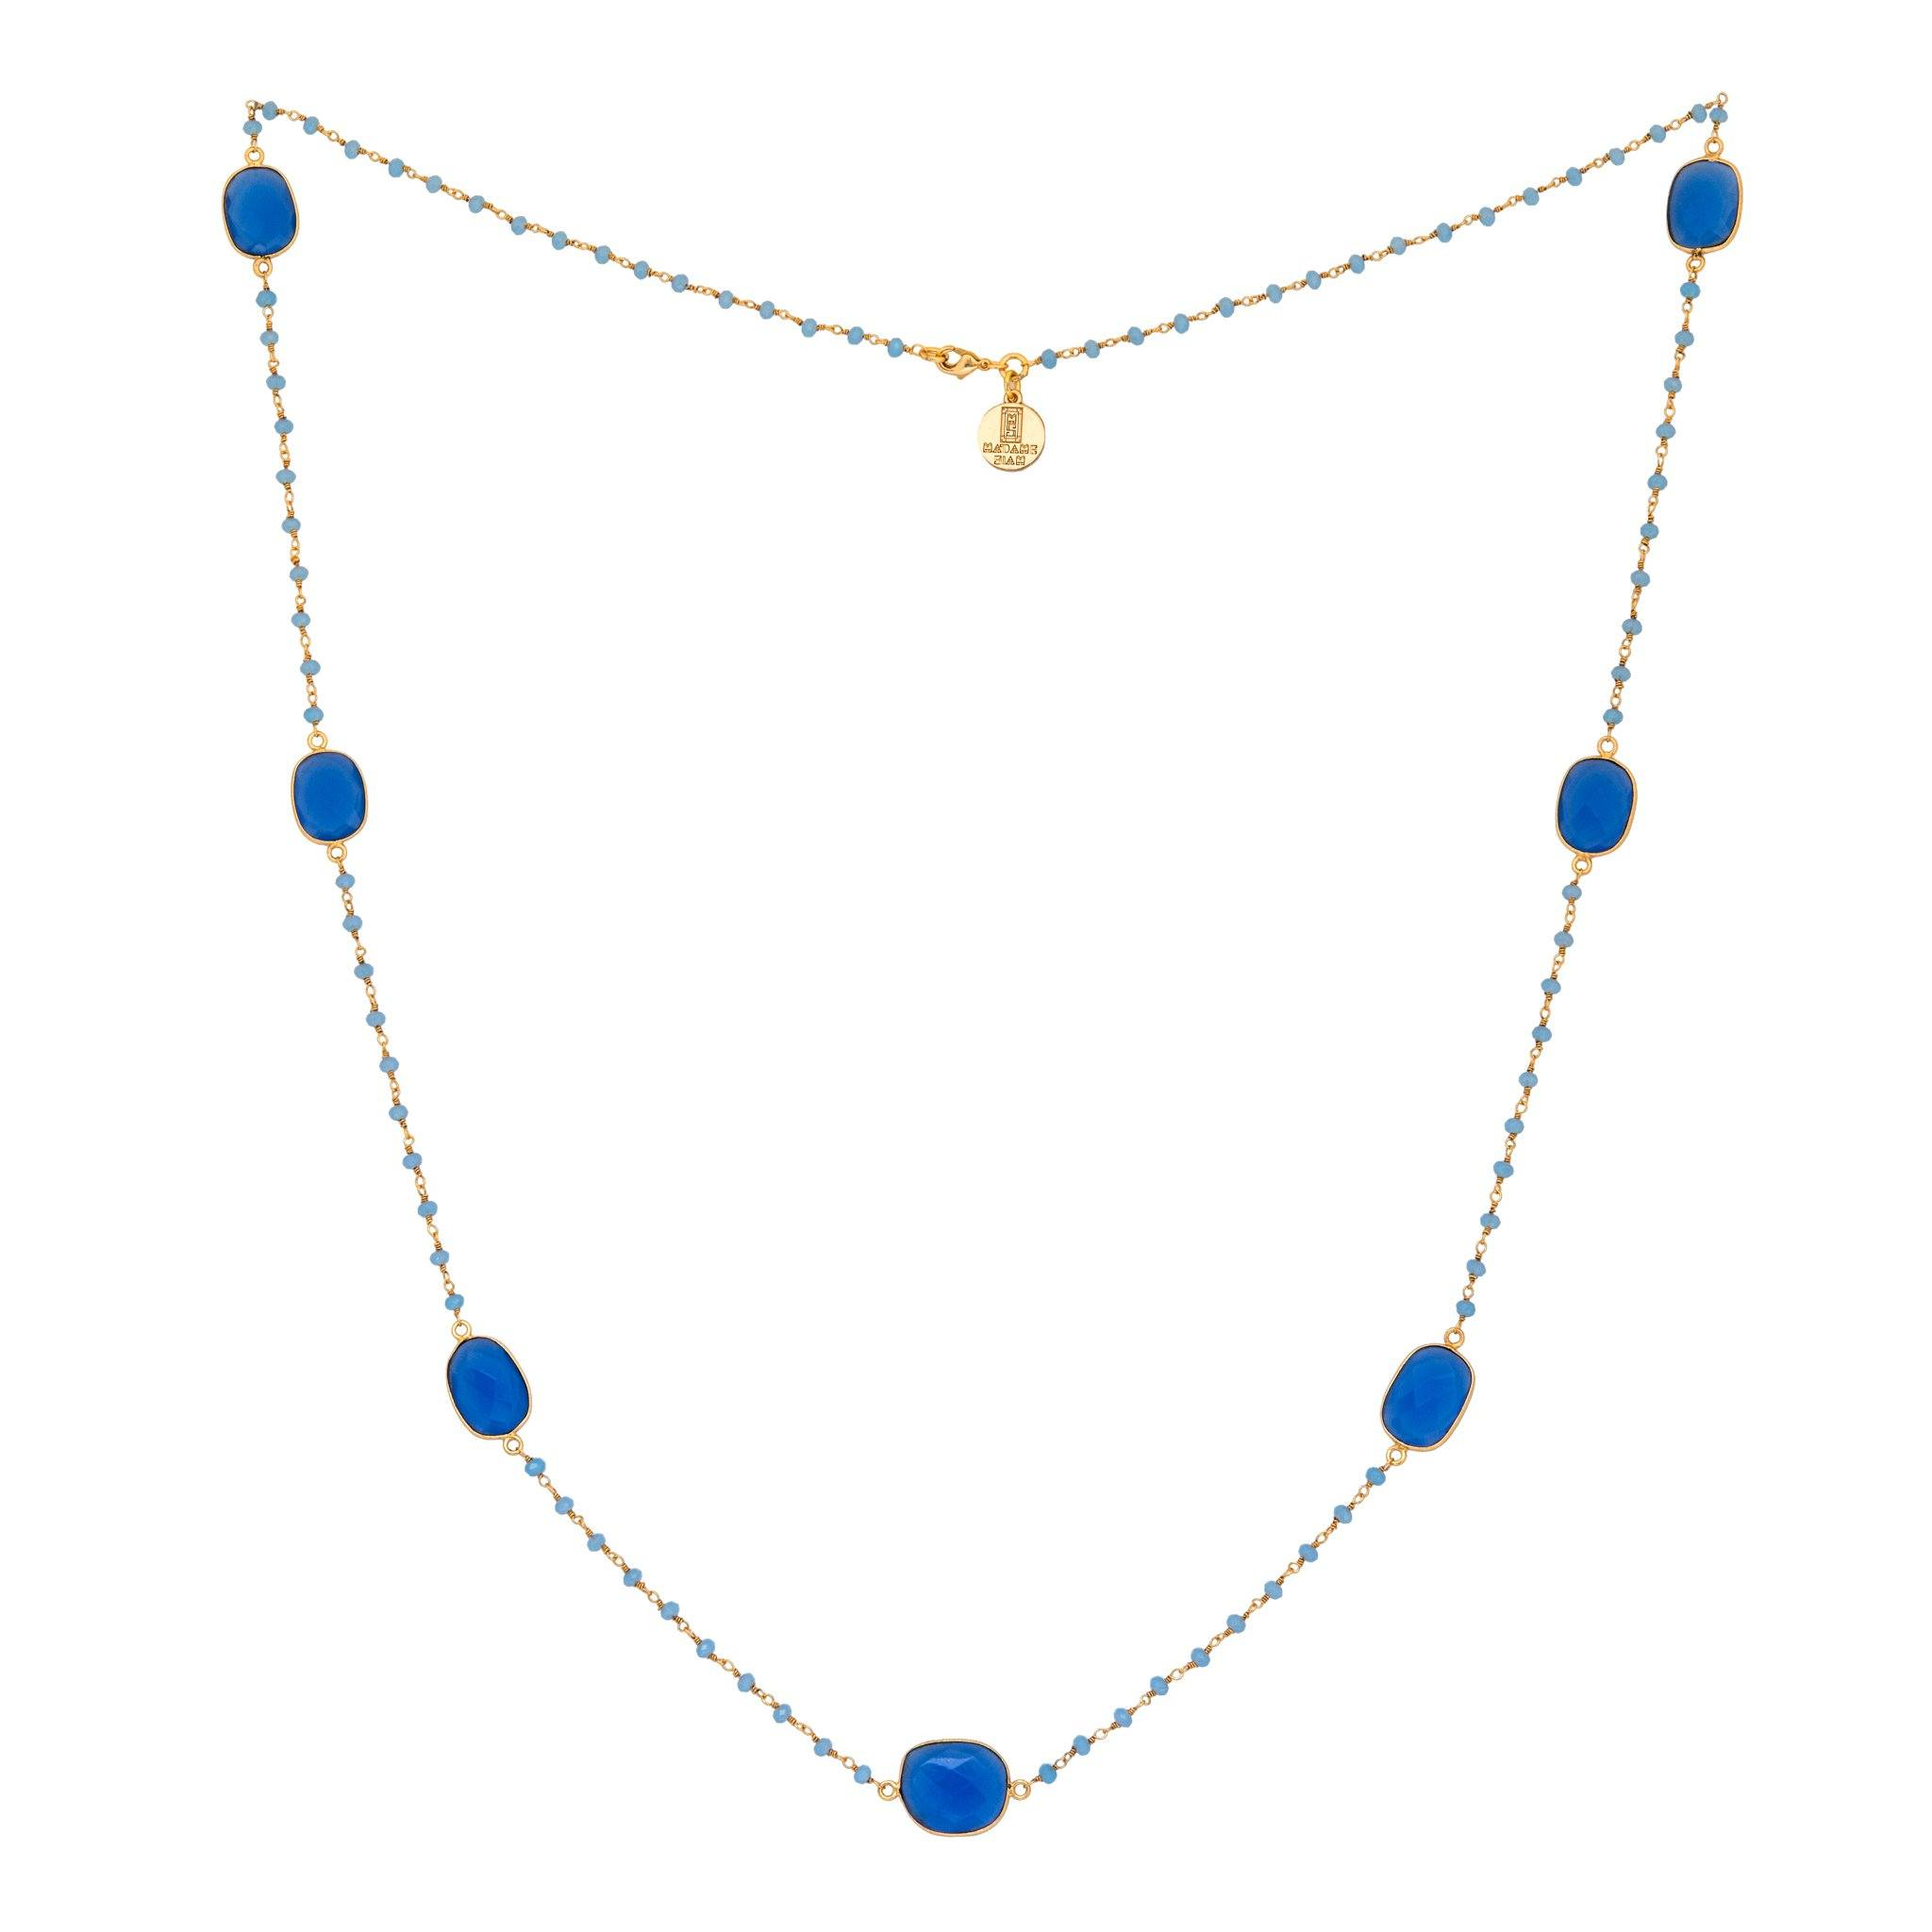 MOUSSON PERLEE blue chalcedony station necklace with rosary chain - MadamSiam